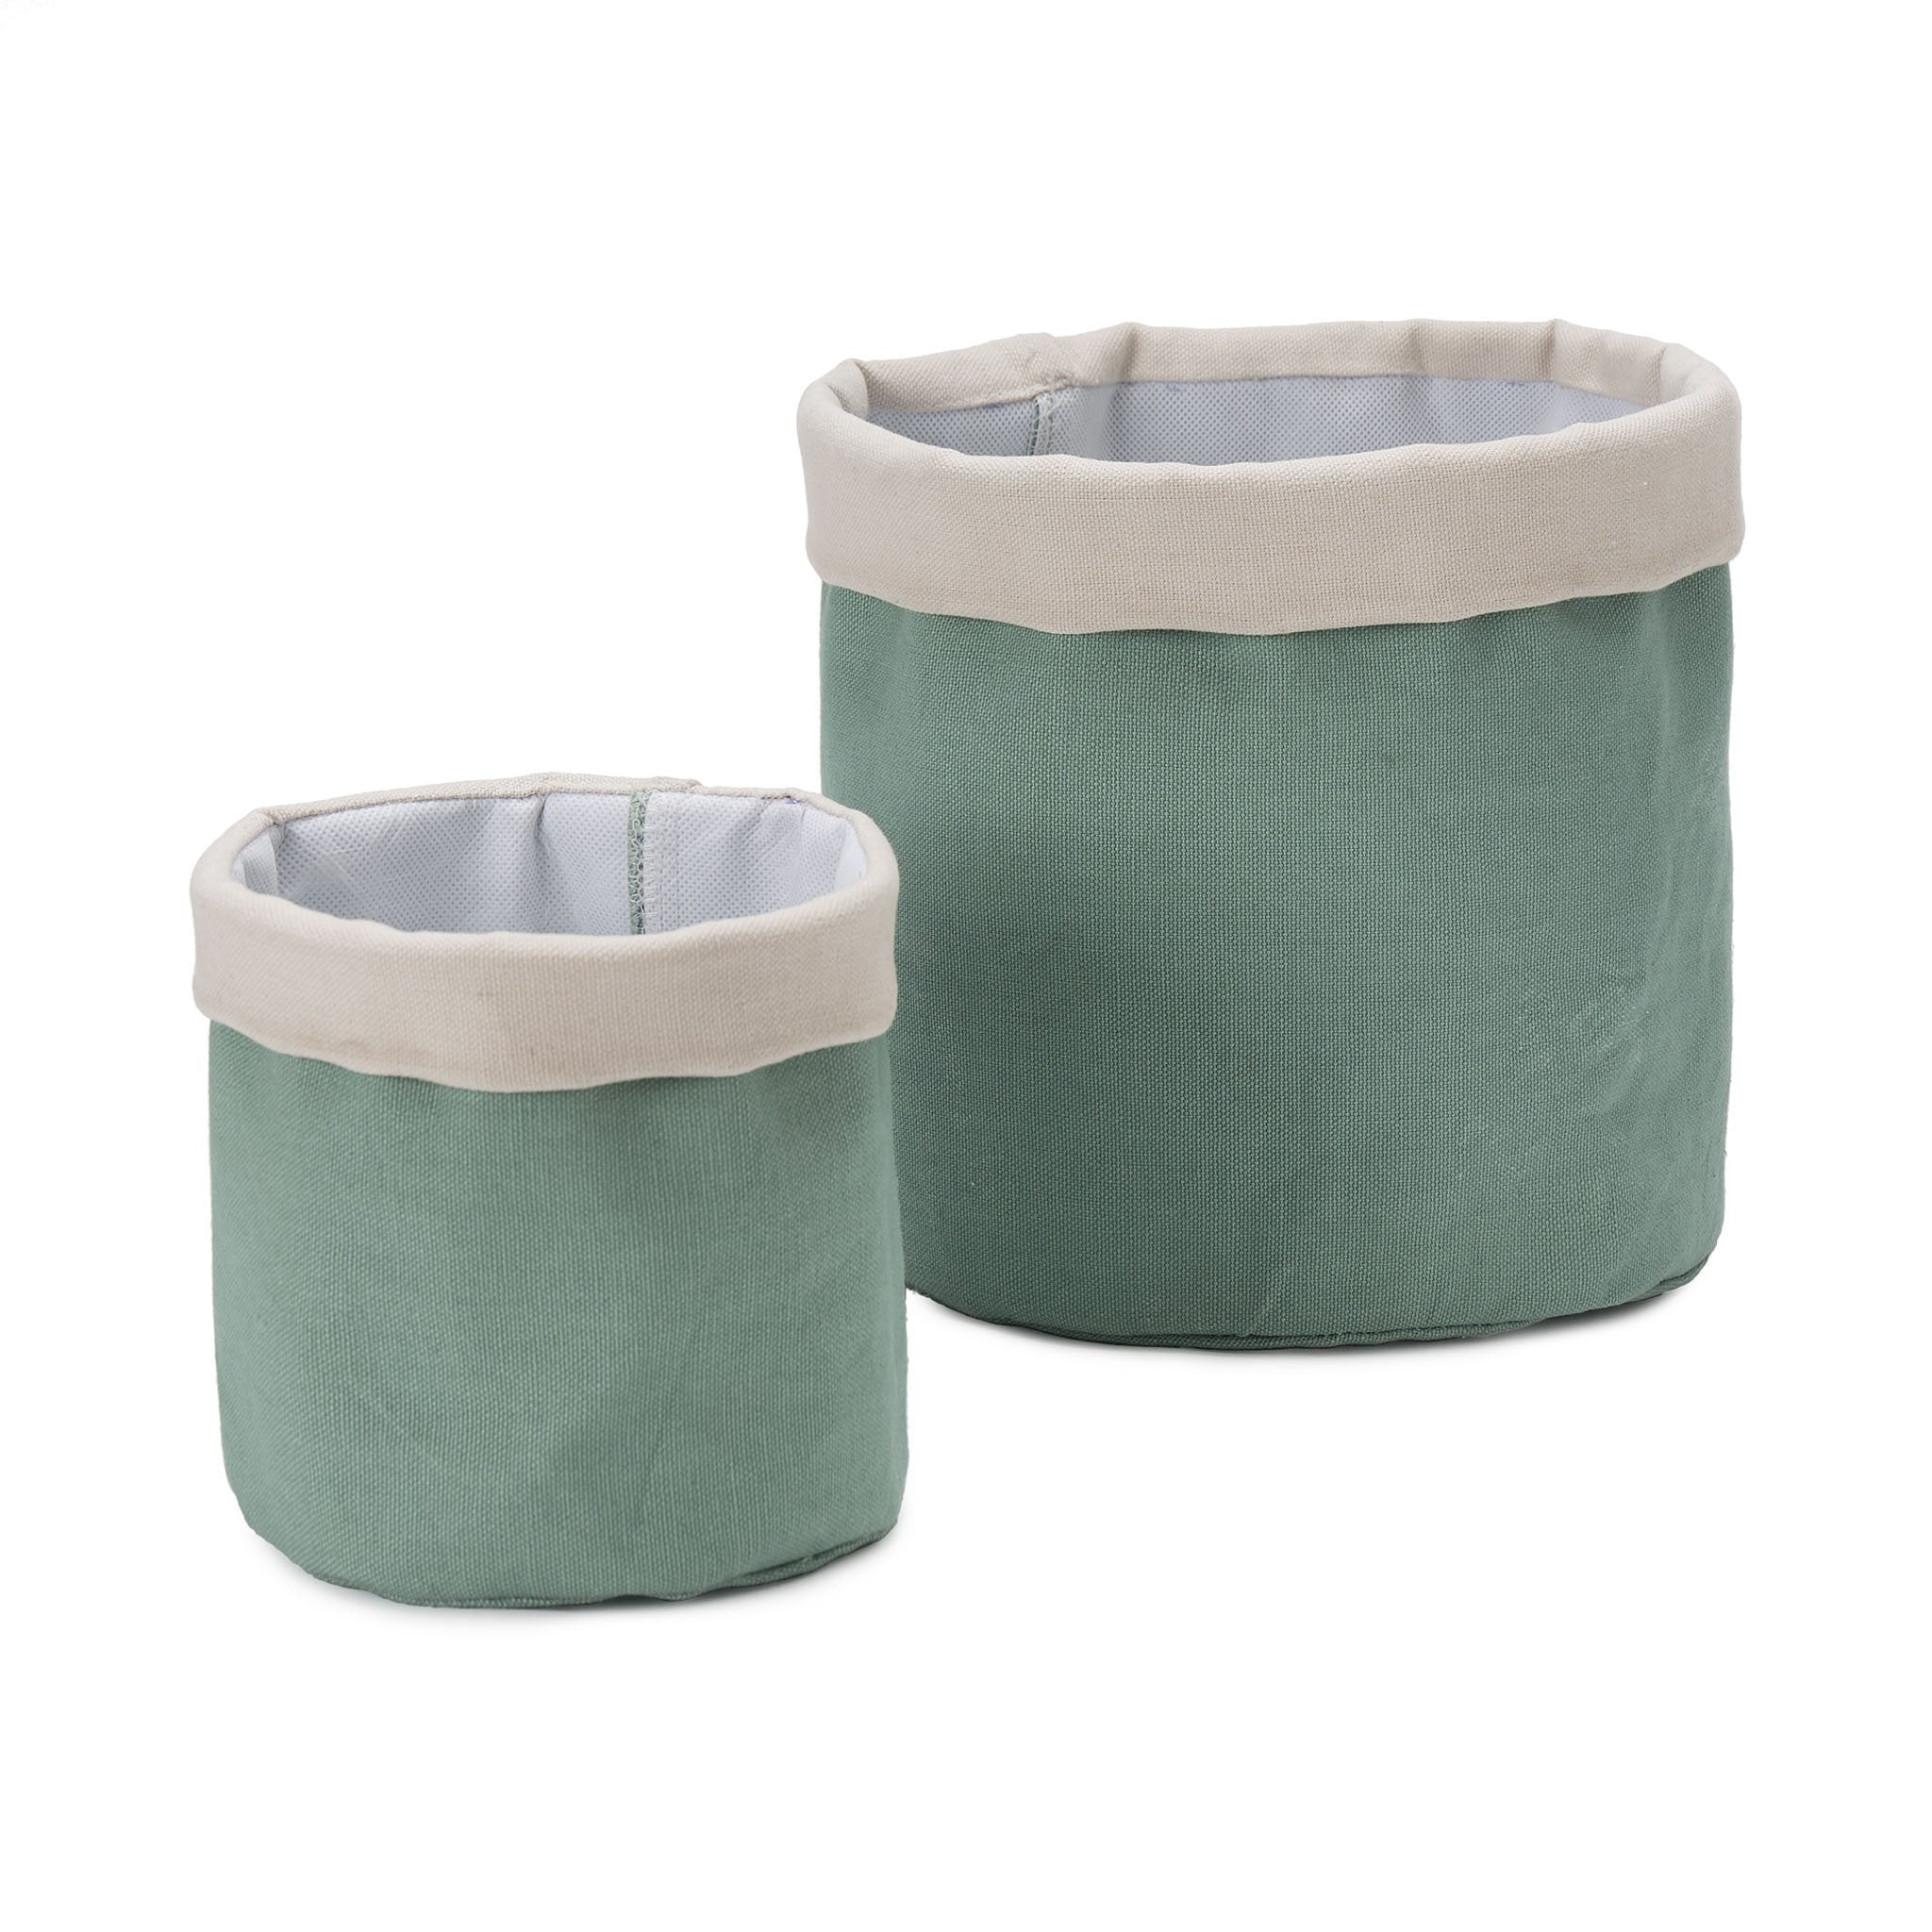 Khuwa Storage in green grey & off-white | Home & Living inspiration | URBANARA